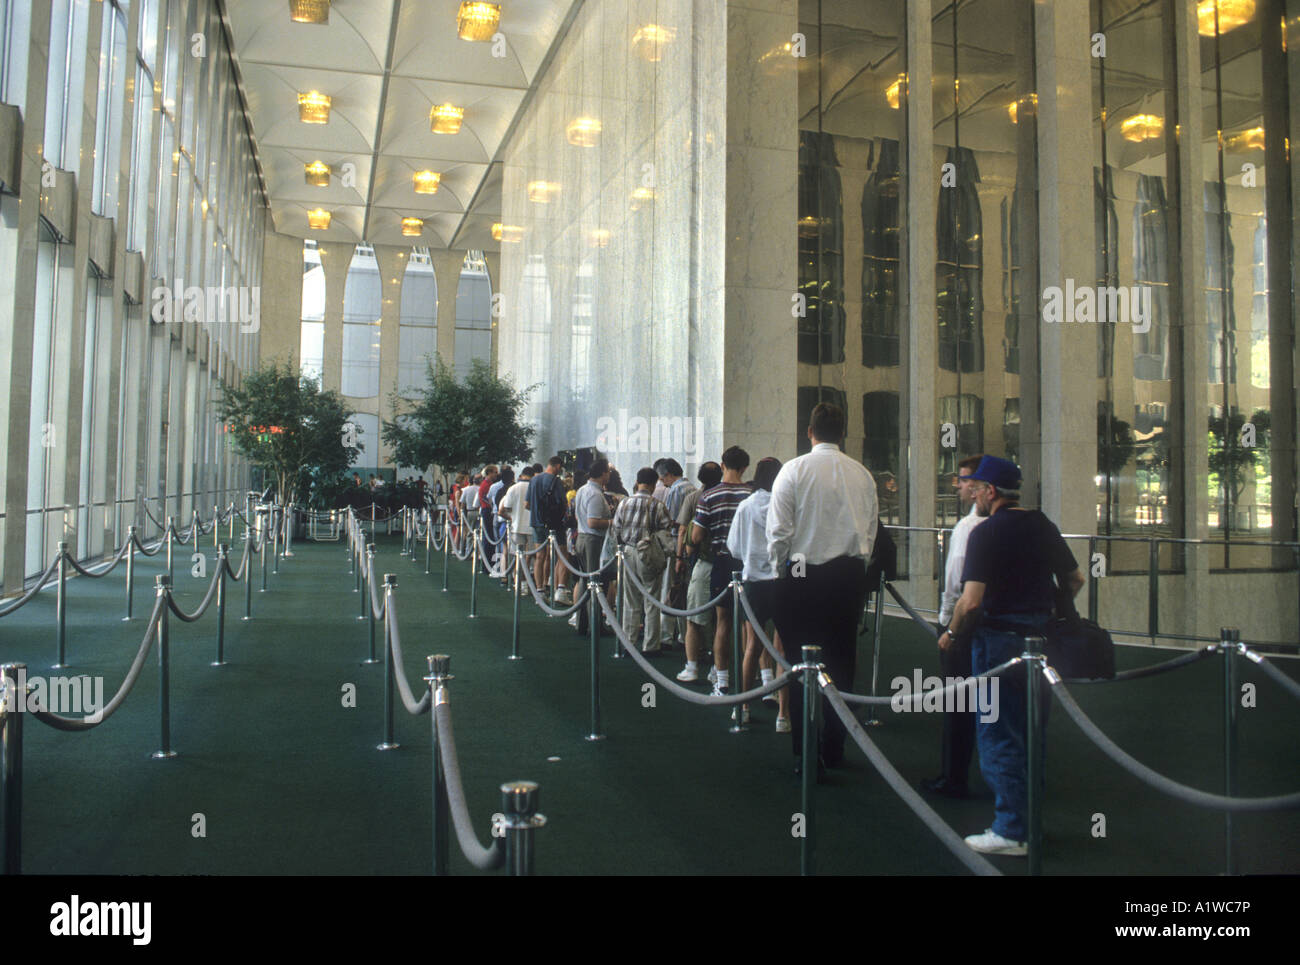 People Queing In A Line,To Go Up One Of The World Trade Center Skyscrapers. That Were In Manhattan NYC.Pre 9/11. - Stock Image